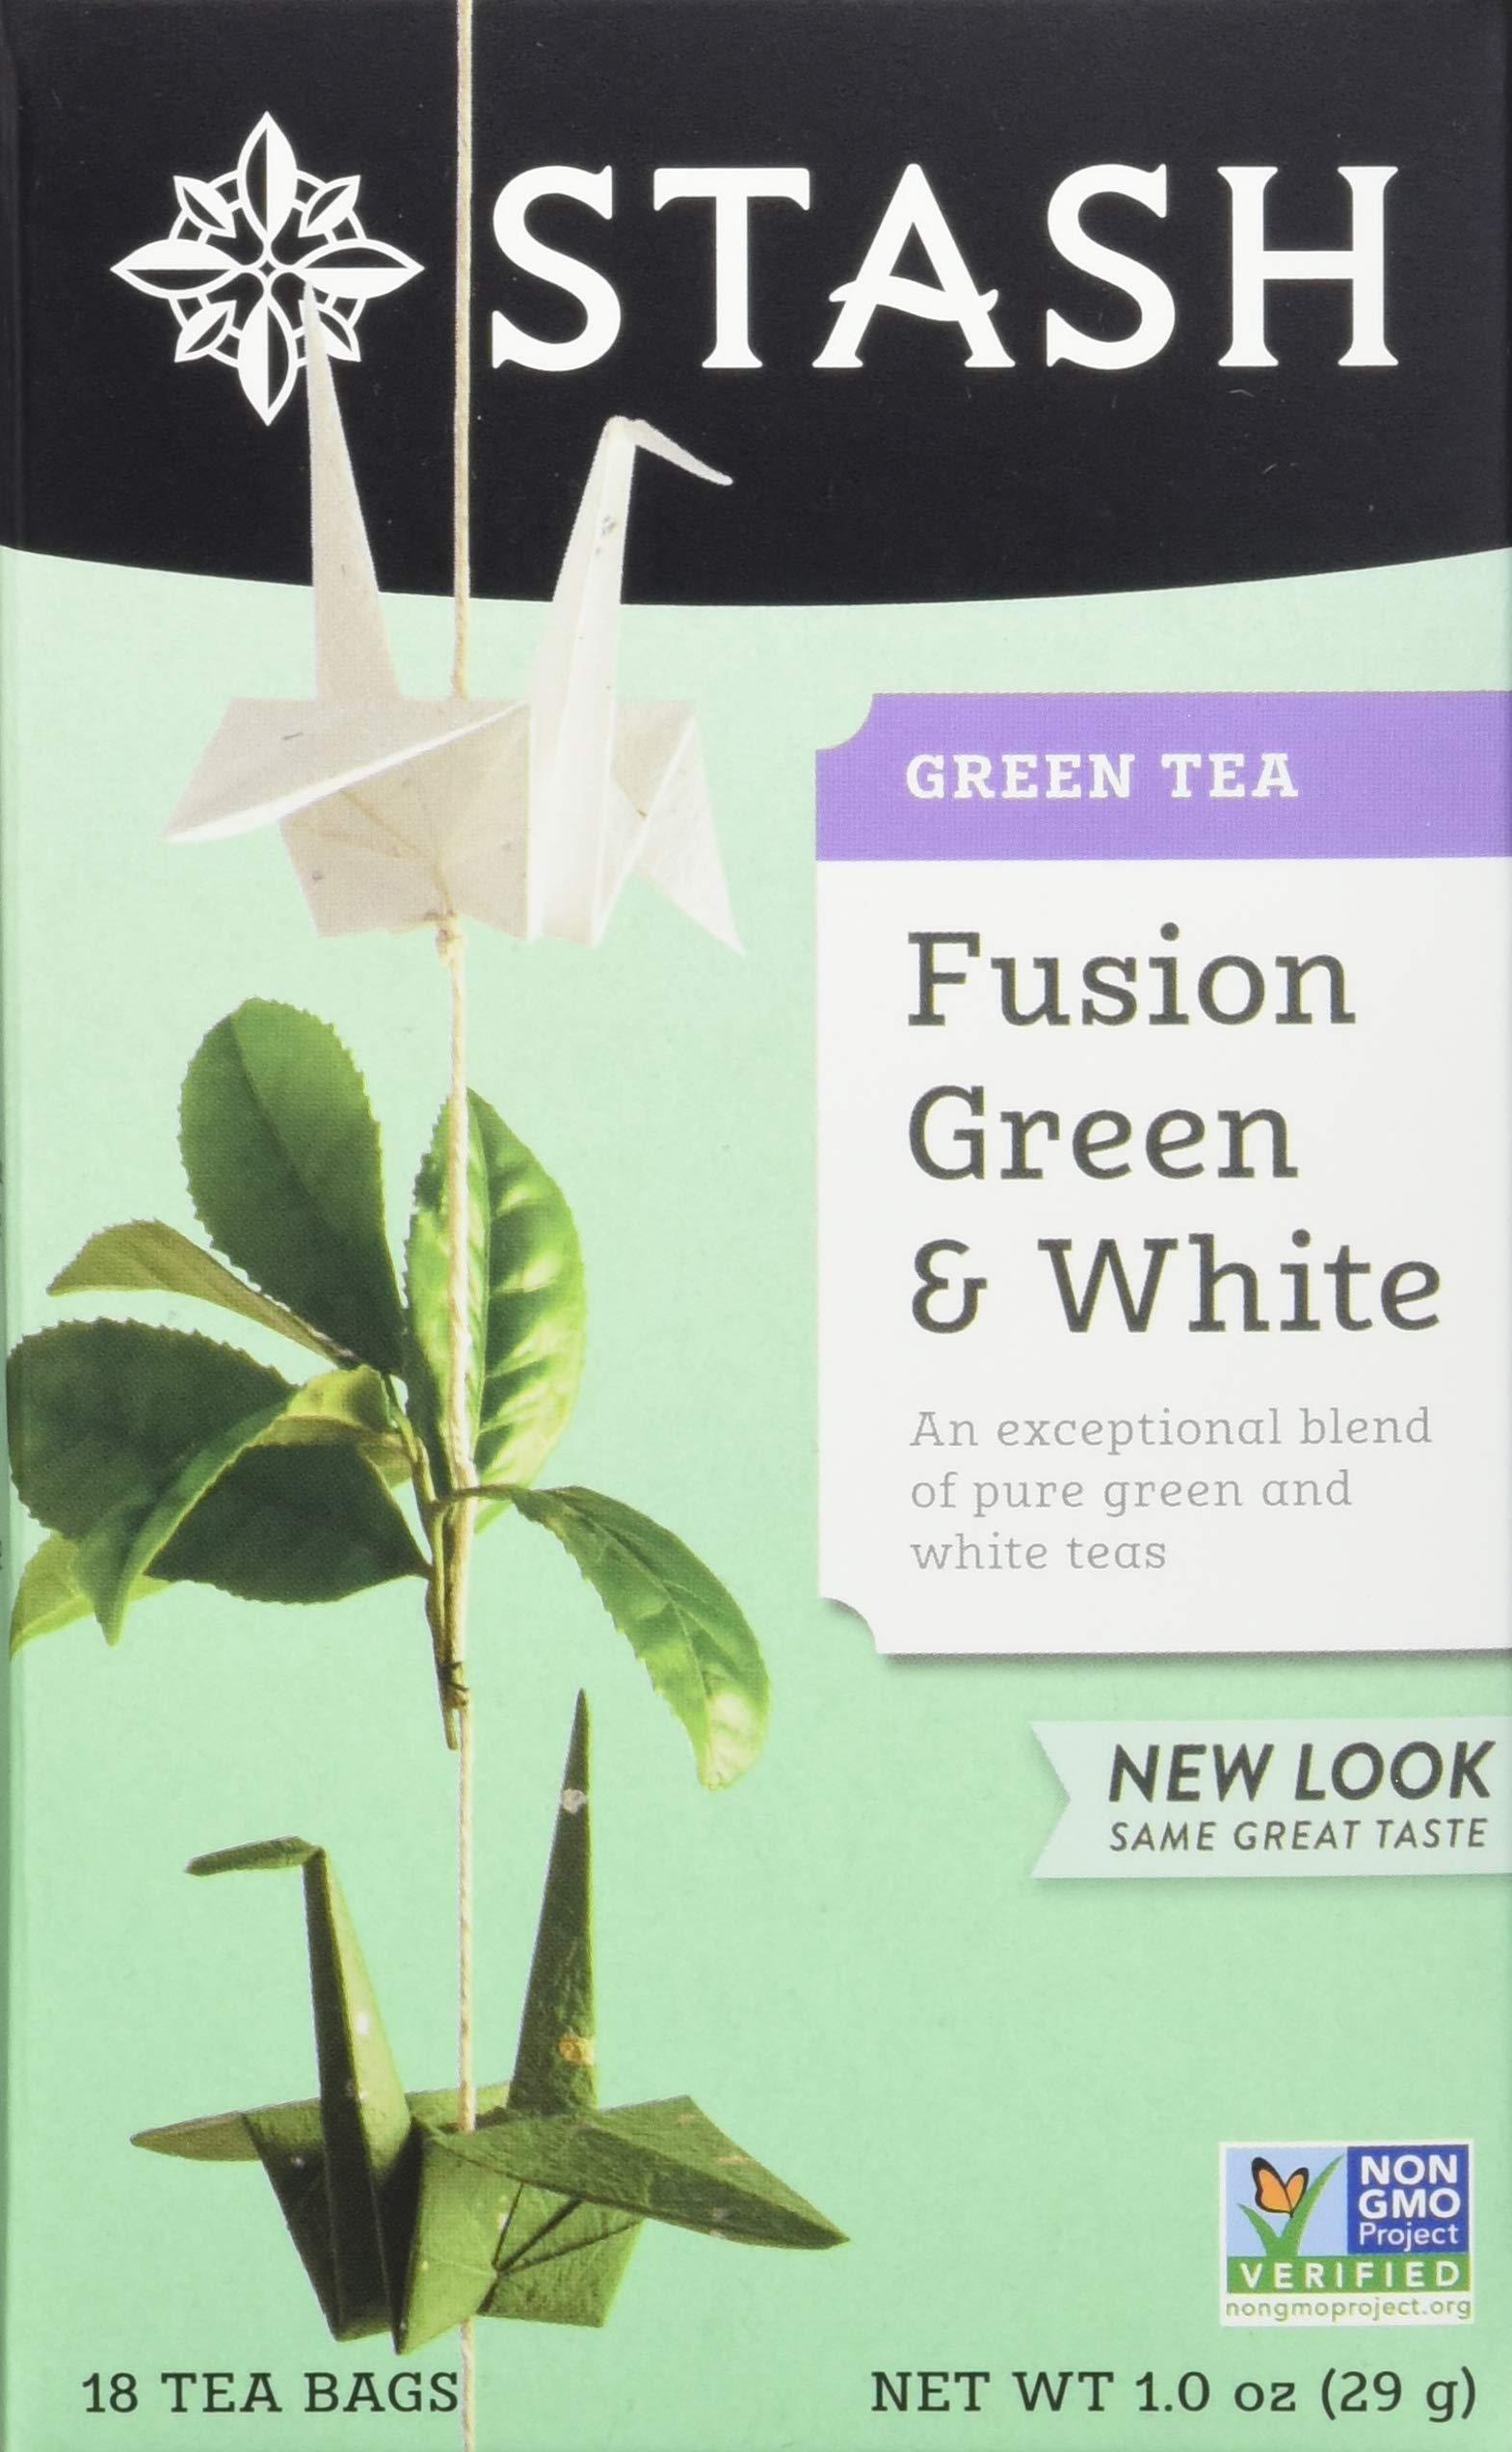 Stash Tea Fusion Green & White Tea 18 Count Tea Bags in Foil (Pack of 6) (Packaging May Vary) Individual Tea Bags for Use in Teapots Mugs or Cups, White Tea and Green Tea, Brew Hot or Iced by Stash Tea